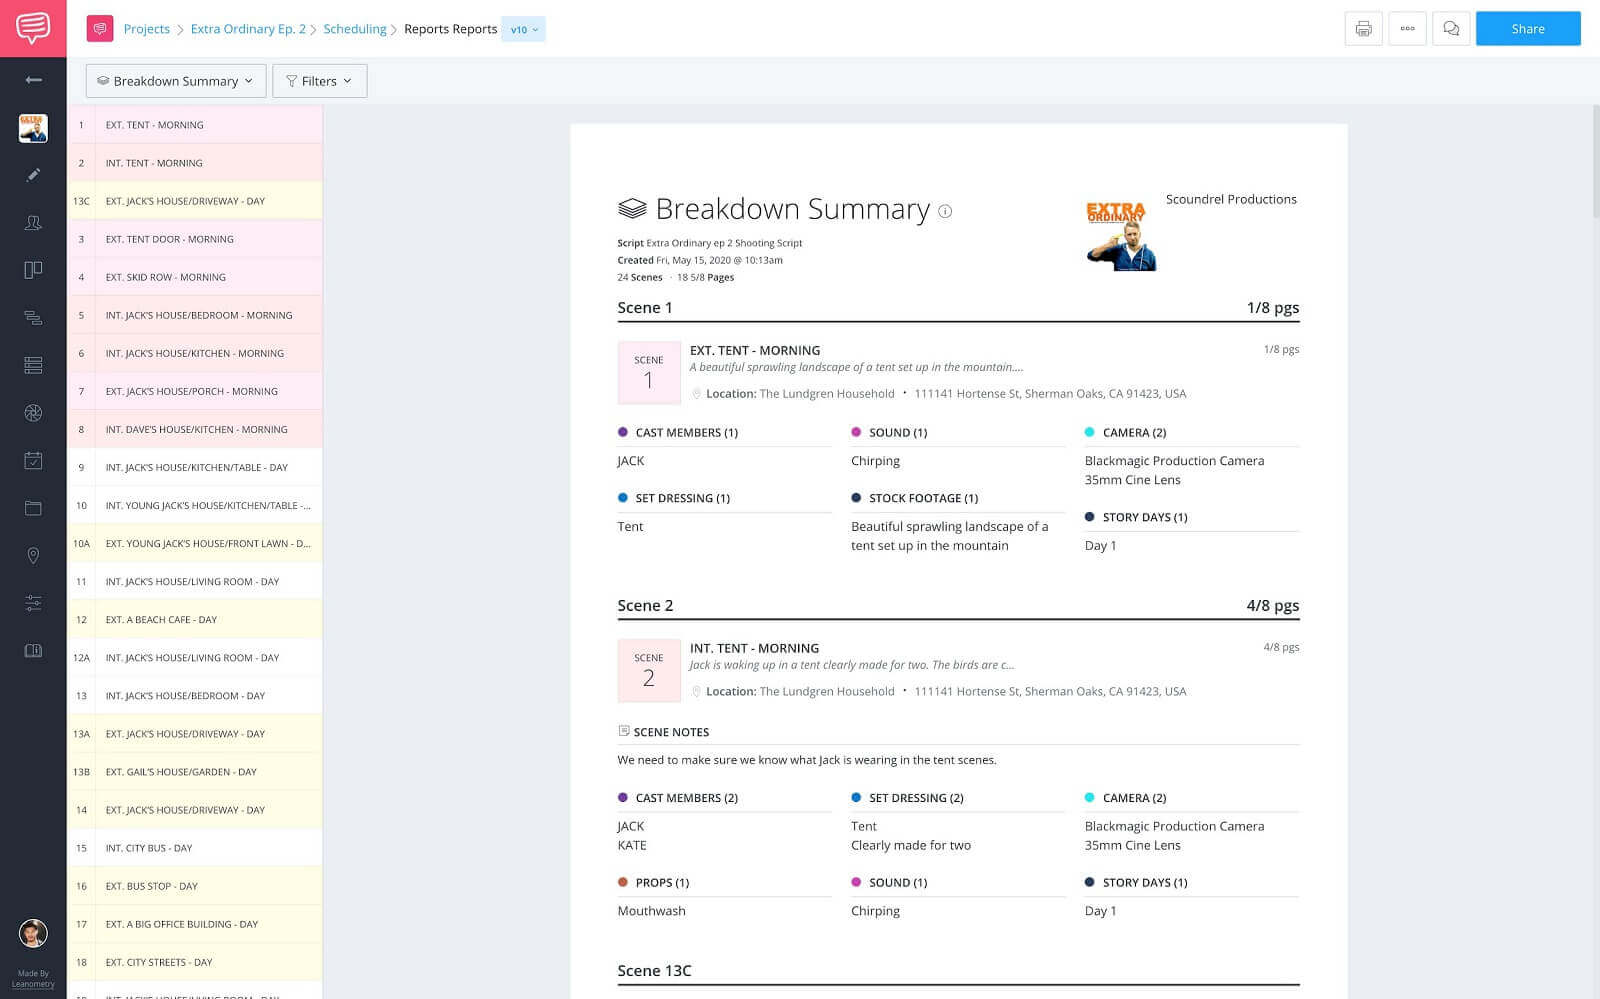 StudioBinder Reports Page - Fully Populated Breakdown Summary